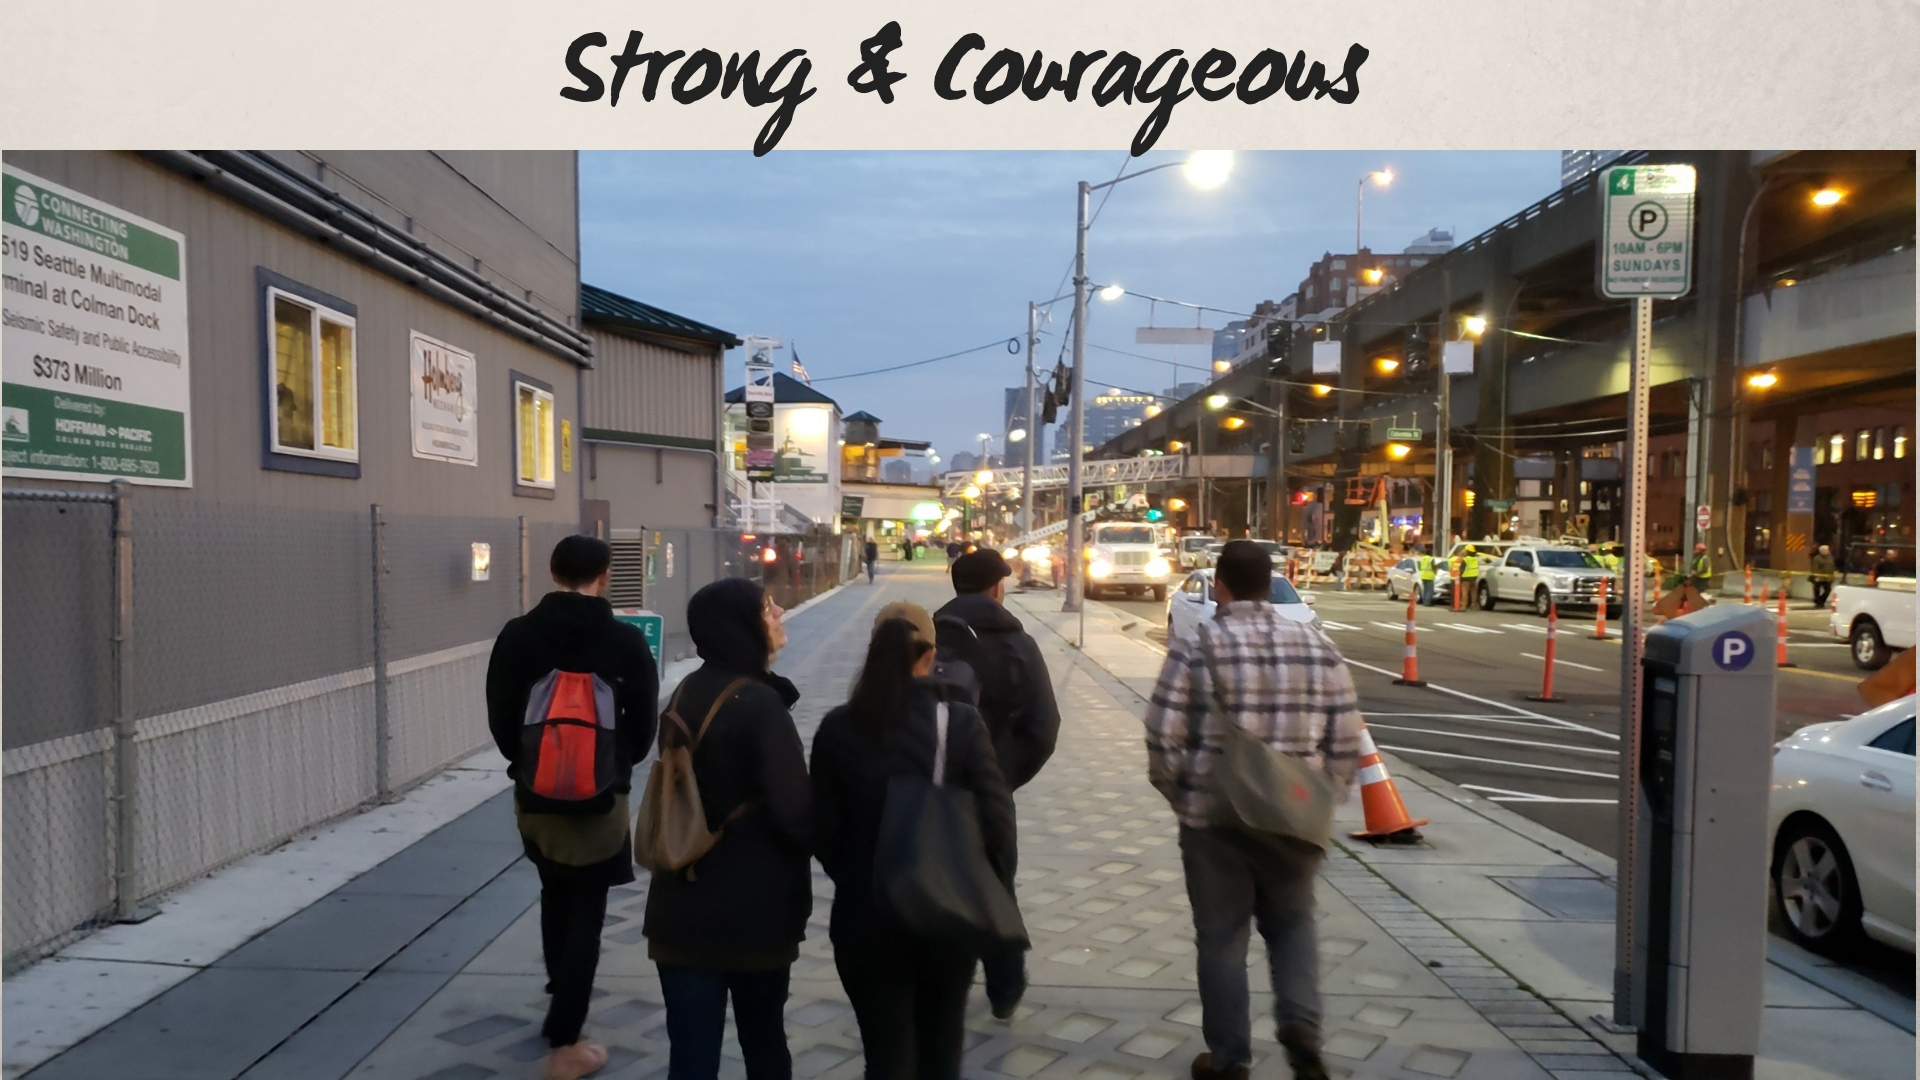 Things Above — Strong & Courageous